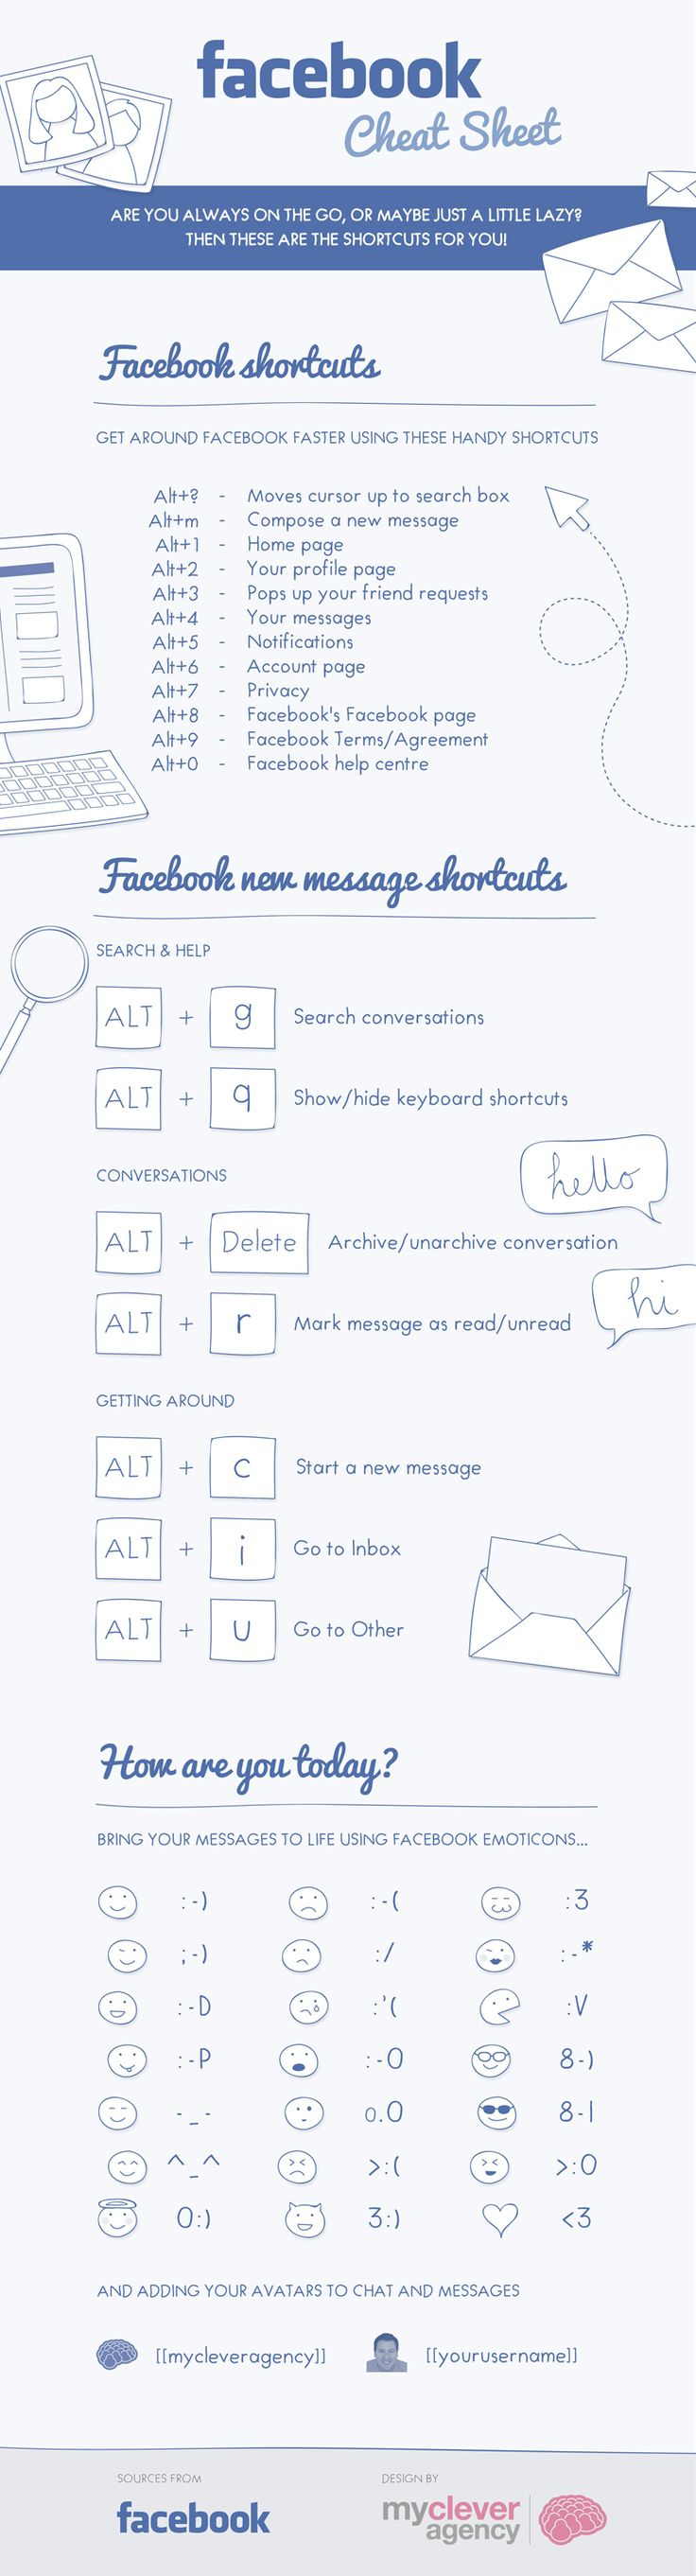 Facebook Shortcuts #infographic by mycleveragency